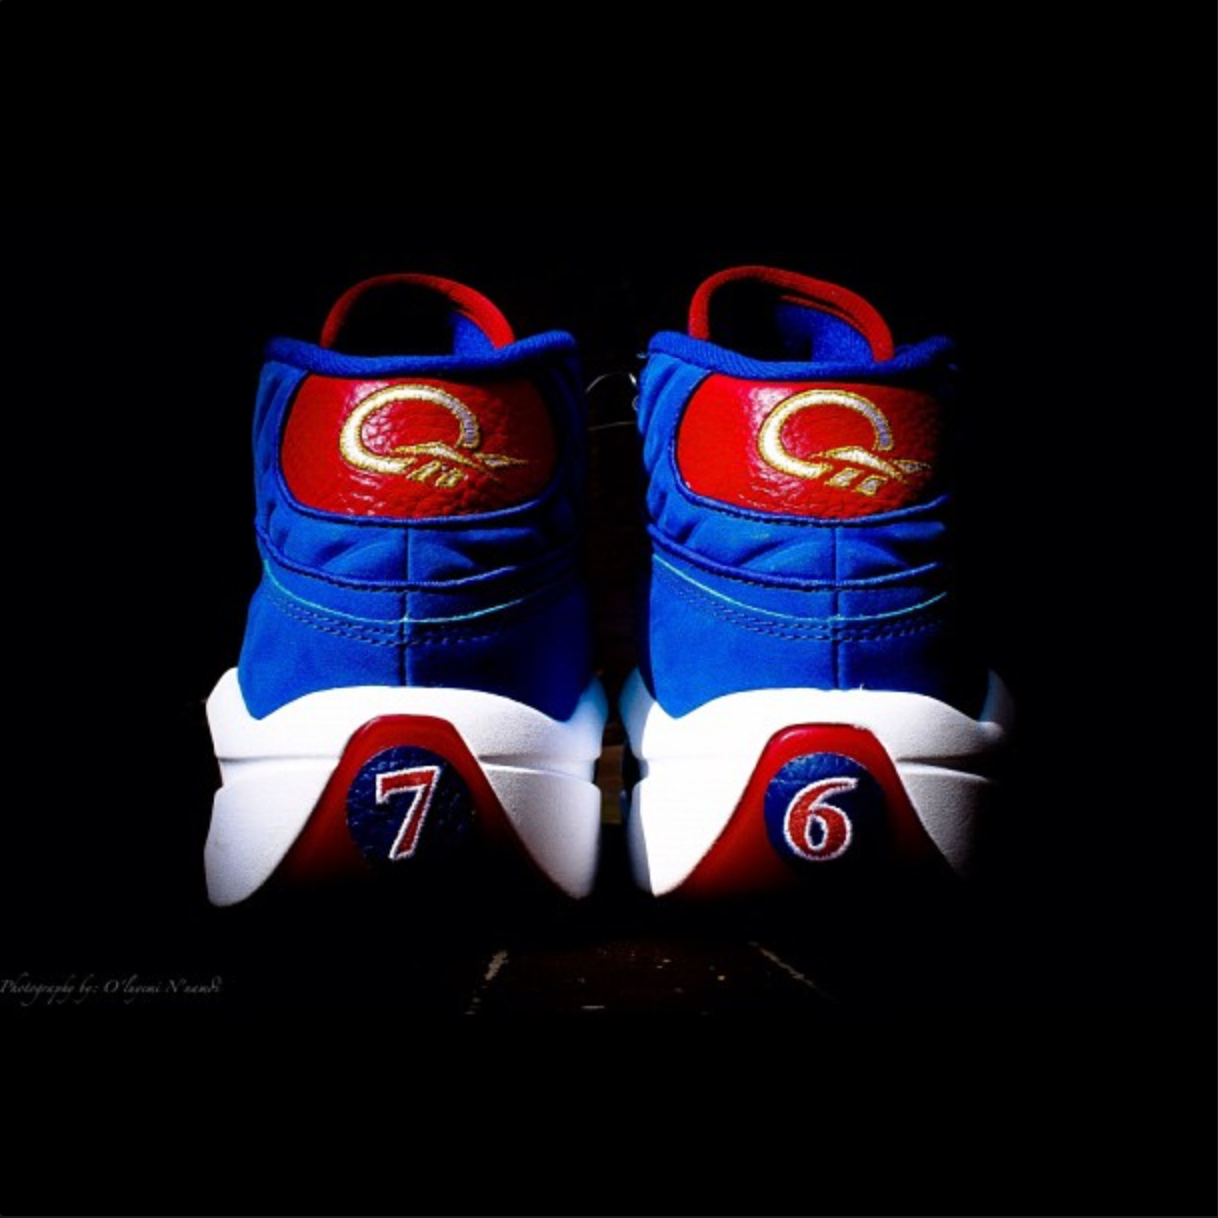 Packer Shoes x Reebok Question Mid Teaser